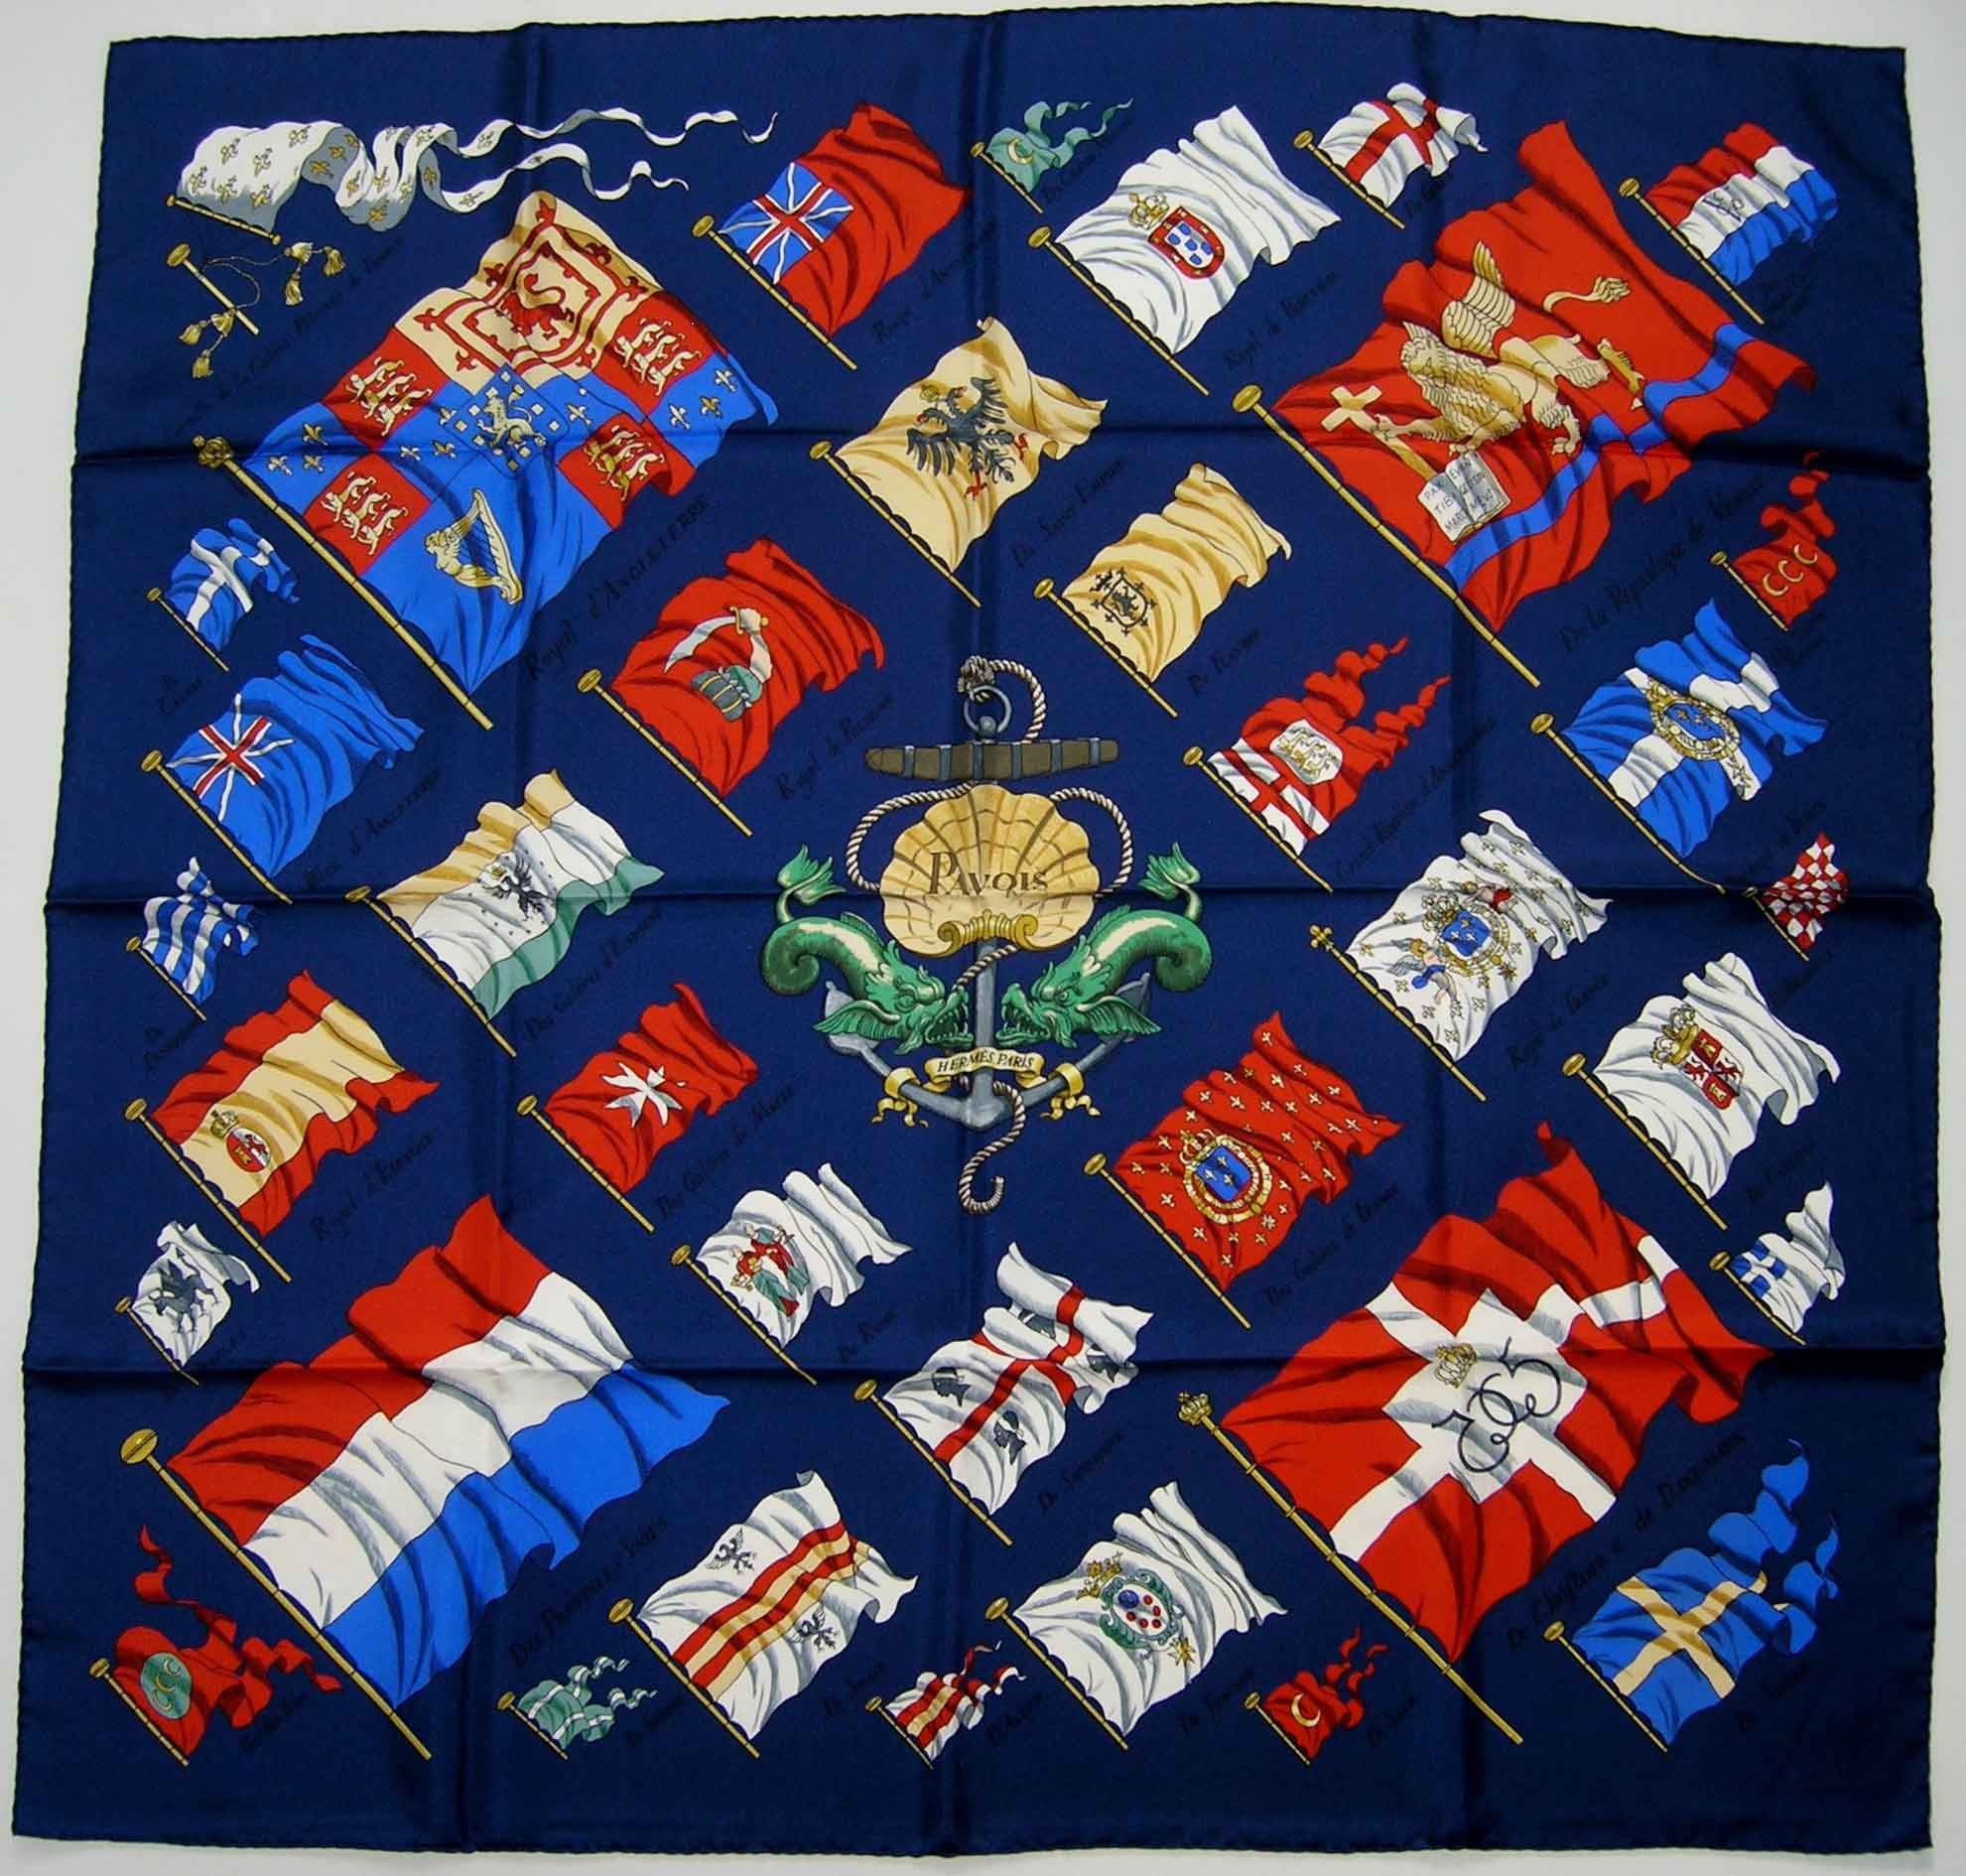 3a7b3b67671 Pavois Hermes Scarf - It s All Goode